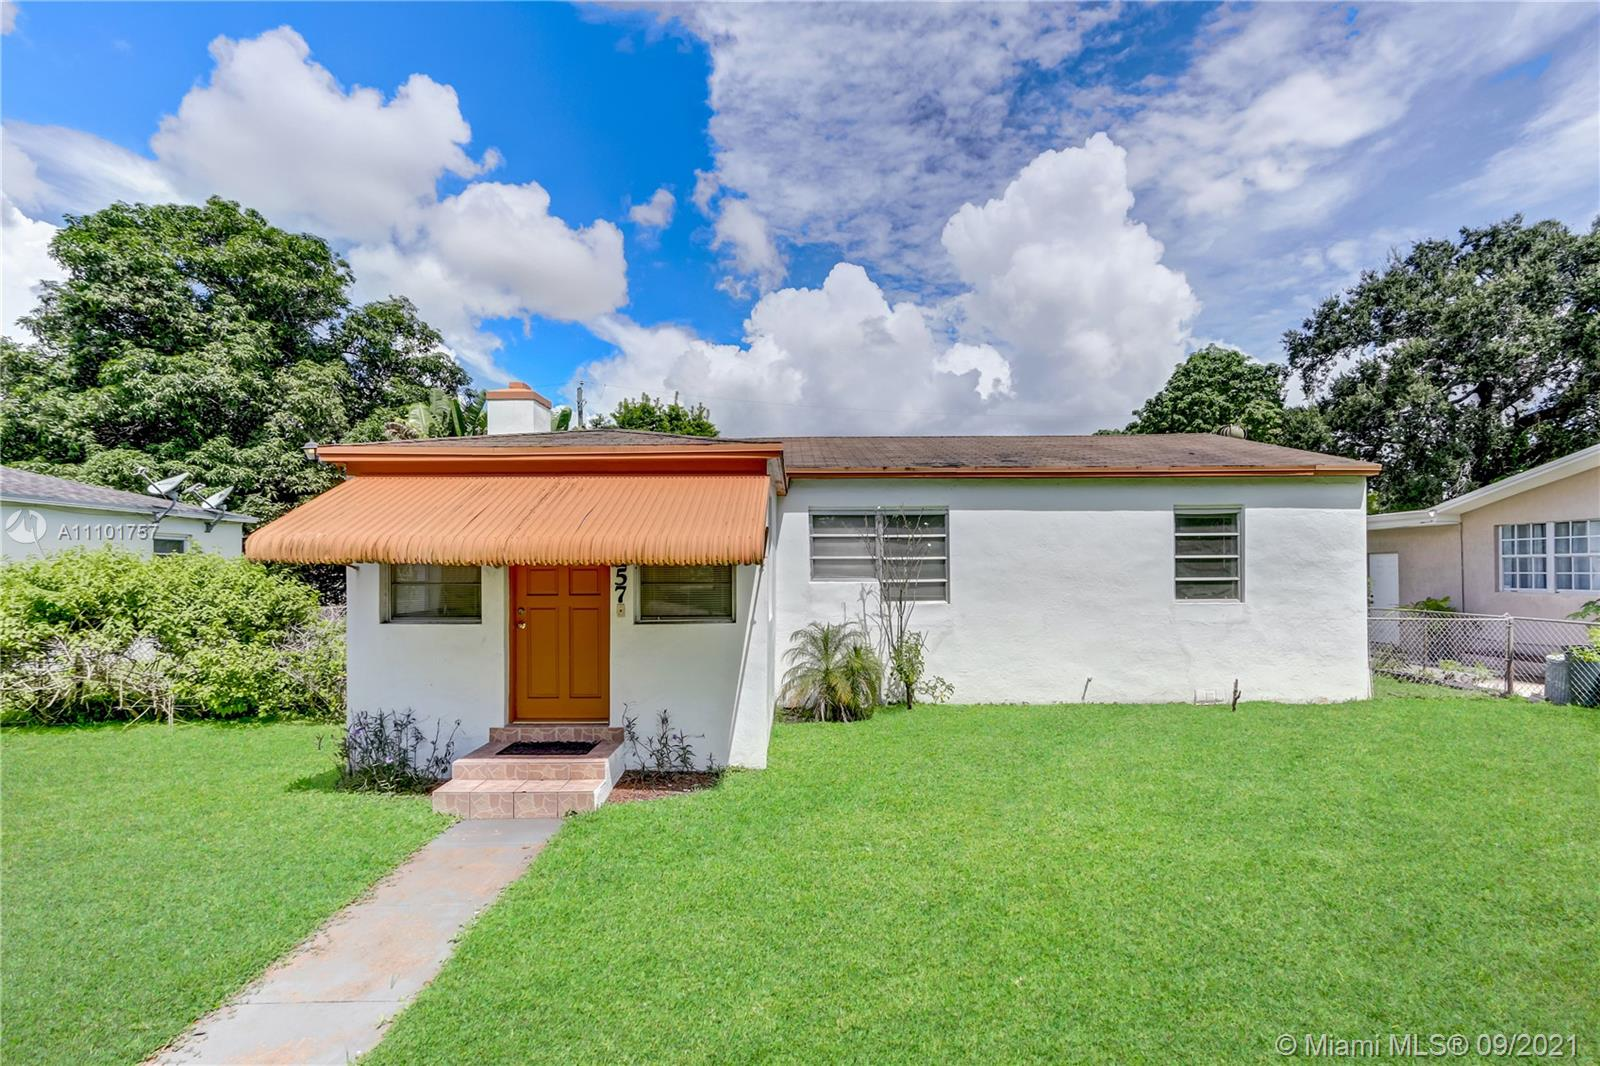 Single Family Home,For Sale,6257 SW 12th St., West Miami, Florida 33144,Brickell,realty,broker,condos near me